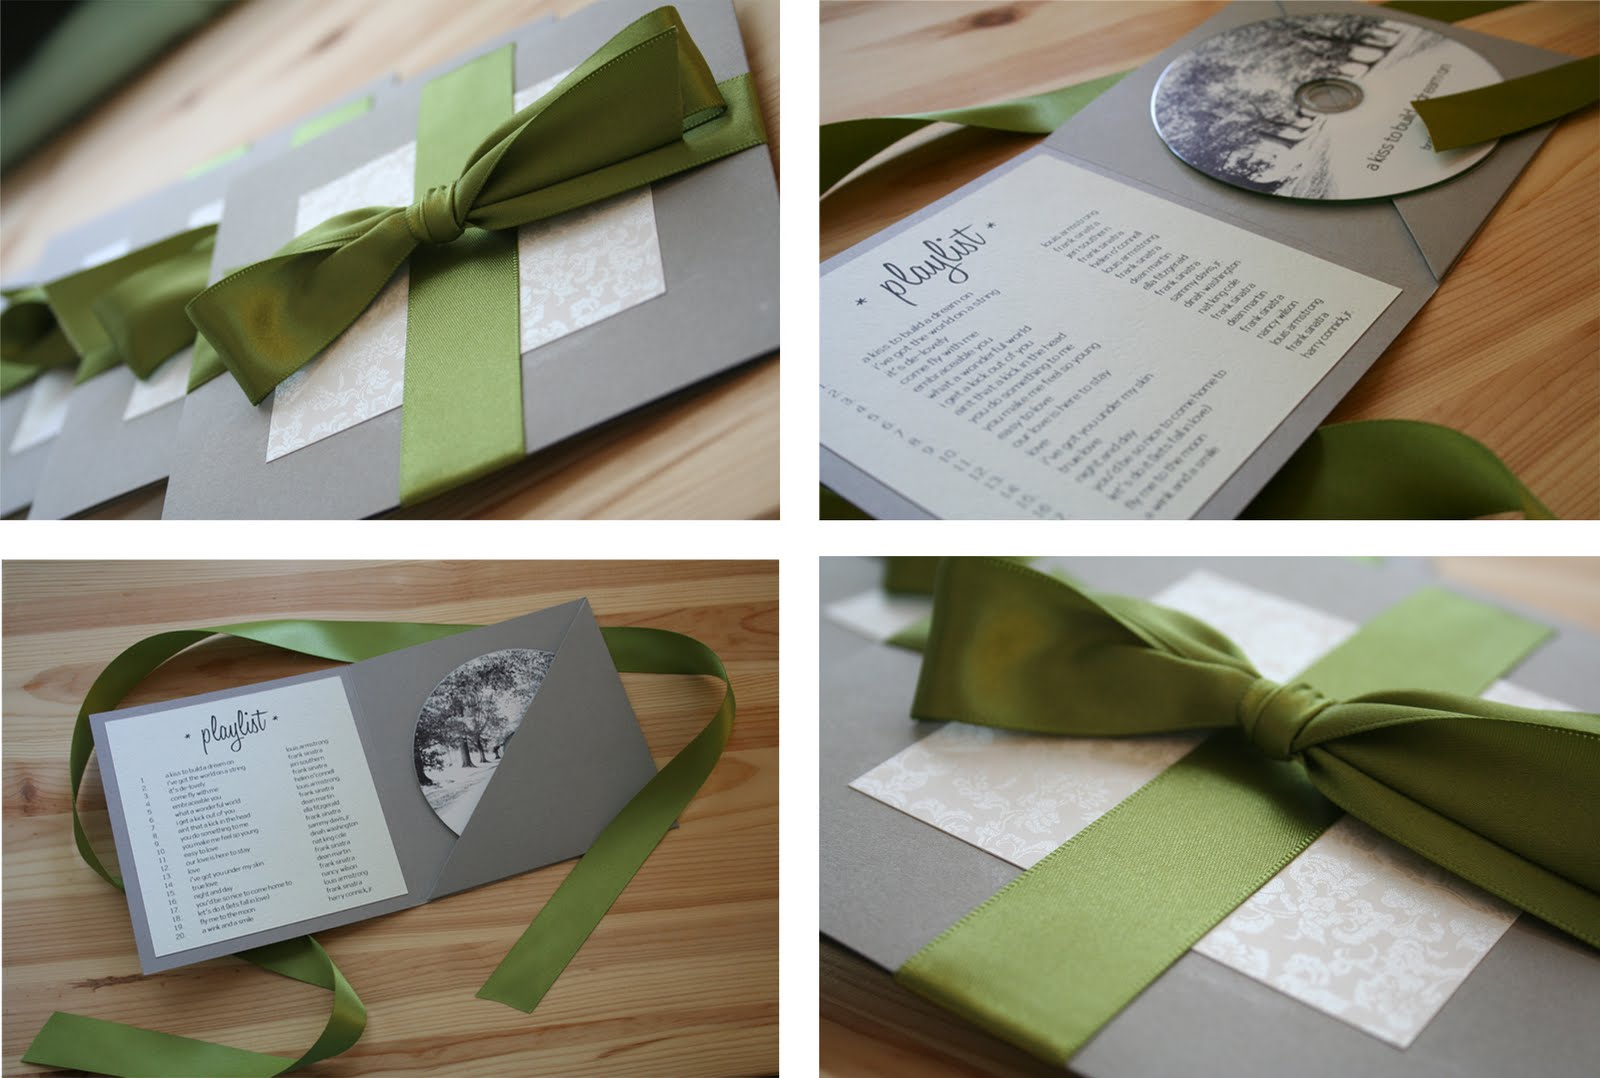 Creative Wedding Gift Ideas To Make: Hitchcock Creative